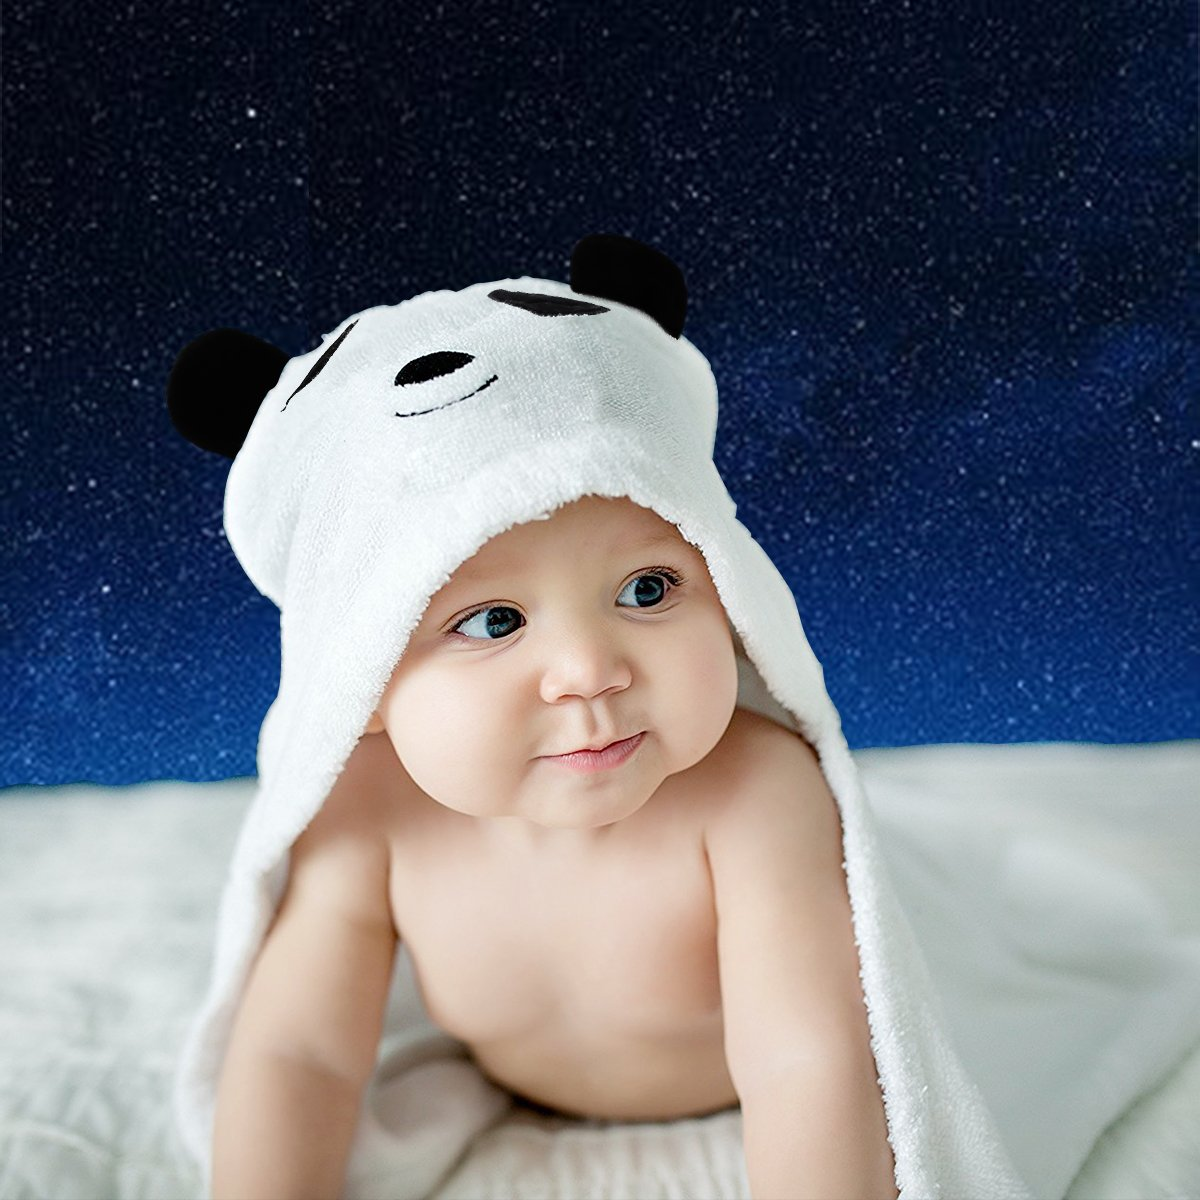 Baby Hooded Towel Upsimples Panda Baby Towels for Boys and Girls 38 × 38 inches Ultra Large 500GSM Super Soft Organic Bamboo Baby Towel for Baby Infant Toddler | Baby Shower/Registry Gift Photo Shoot CH-UP01005